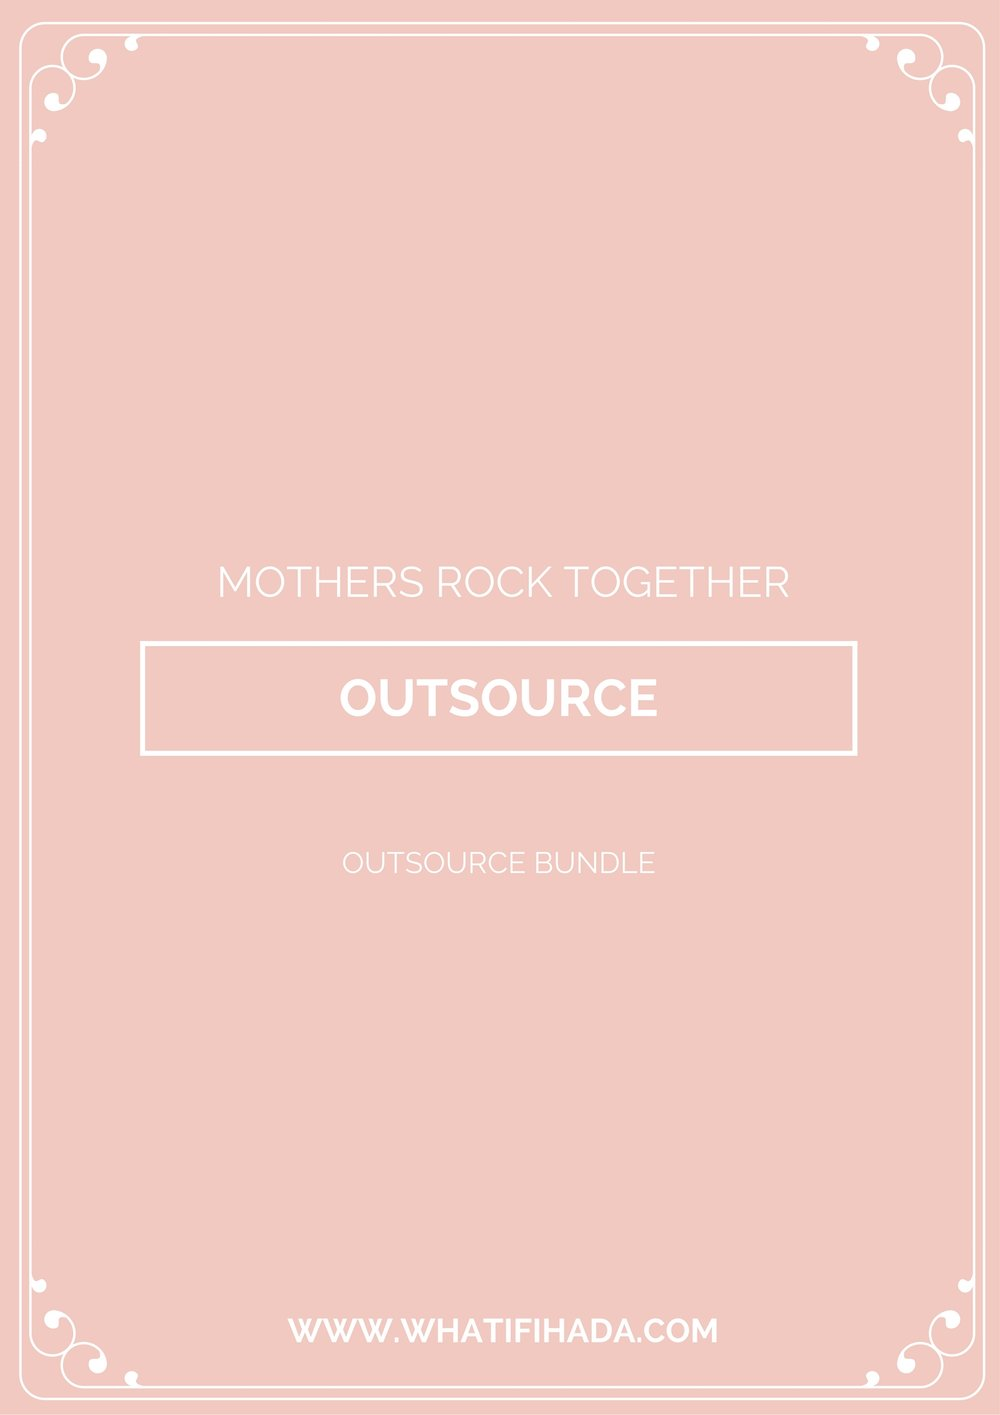 Outsource Printable